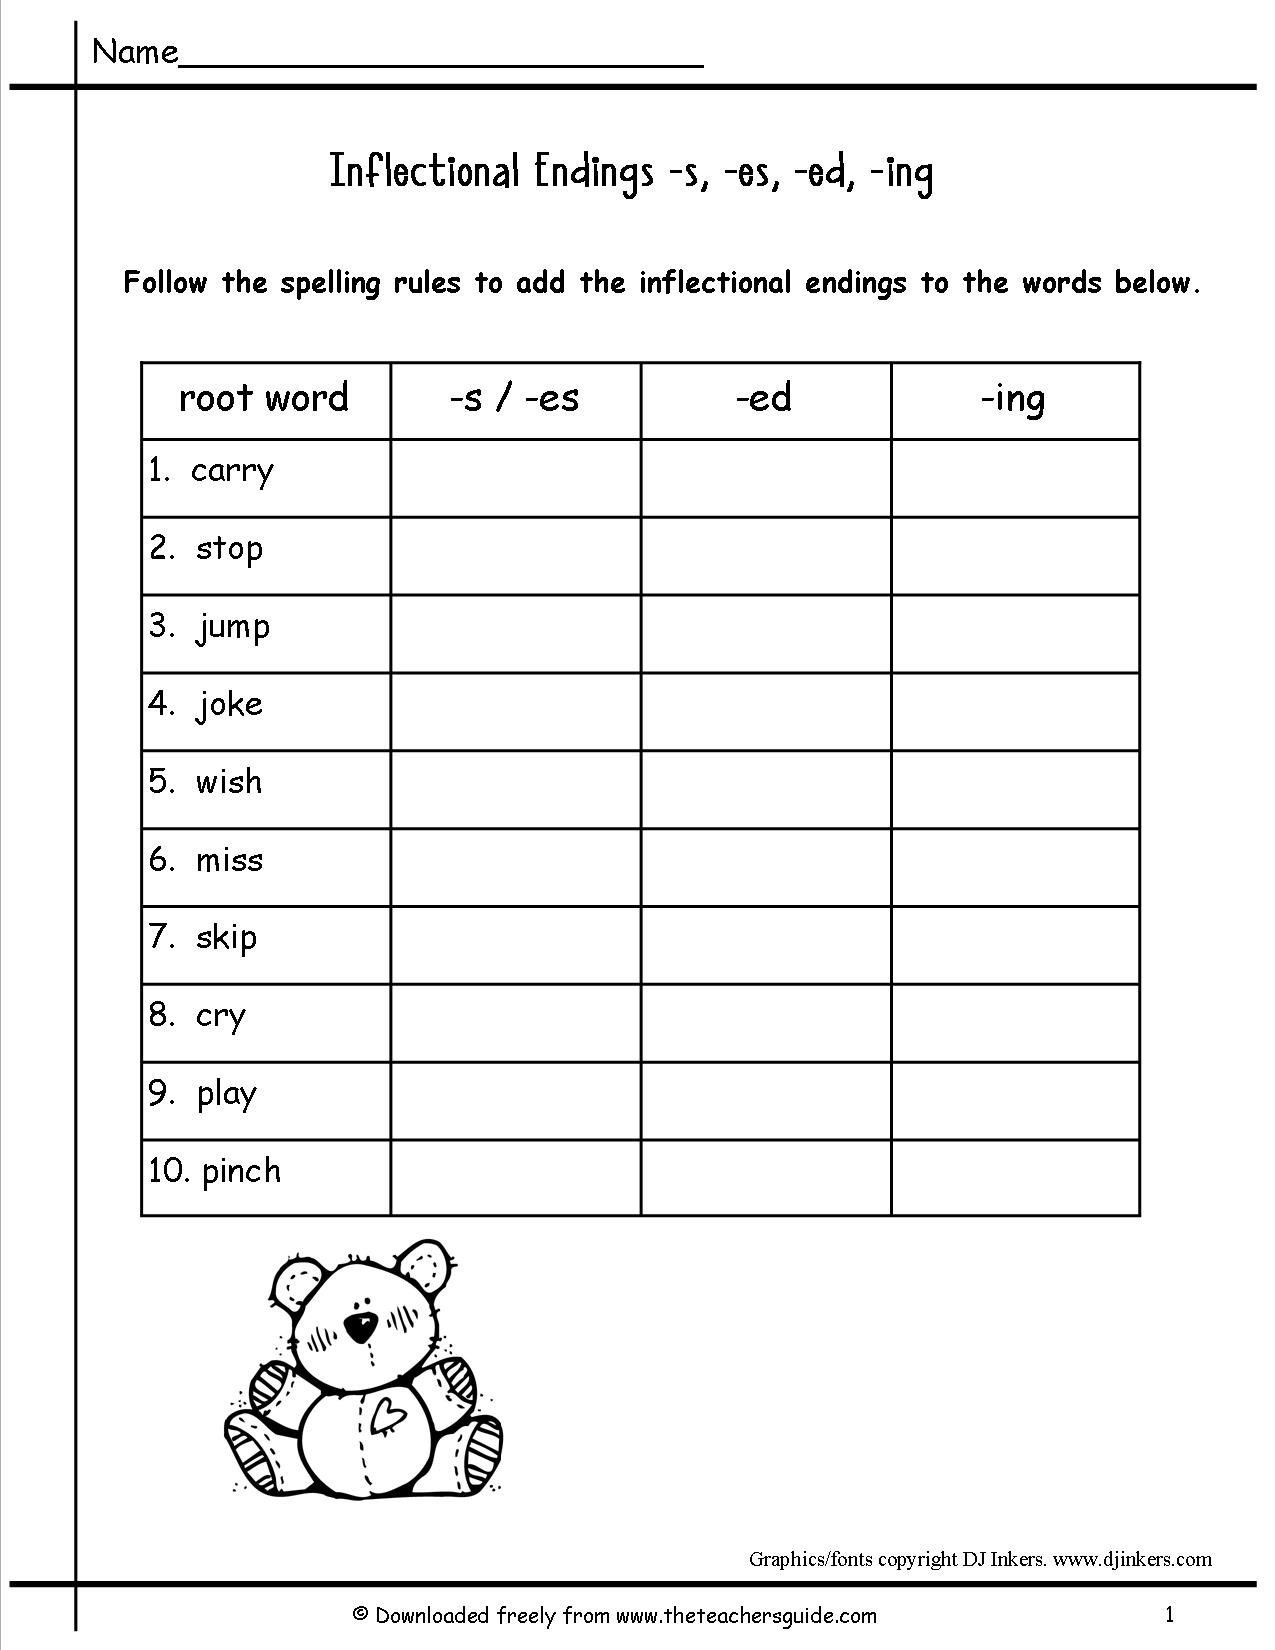 hight resolution of Inflectional Endings Snowman Worksheety   Printable Worksheets and  Activities for Teachers